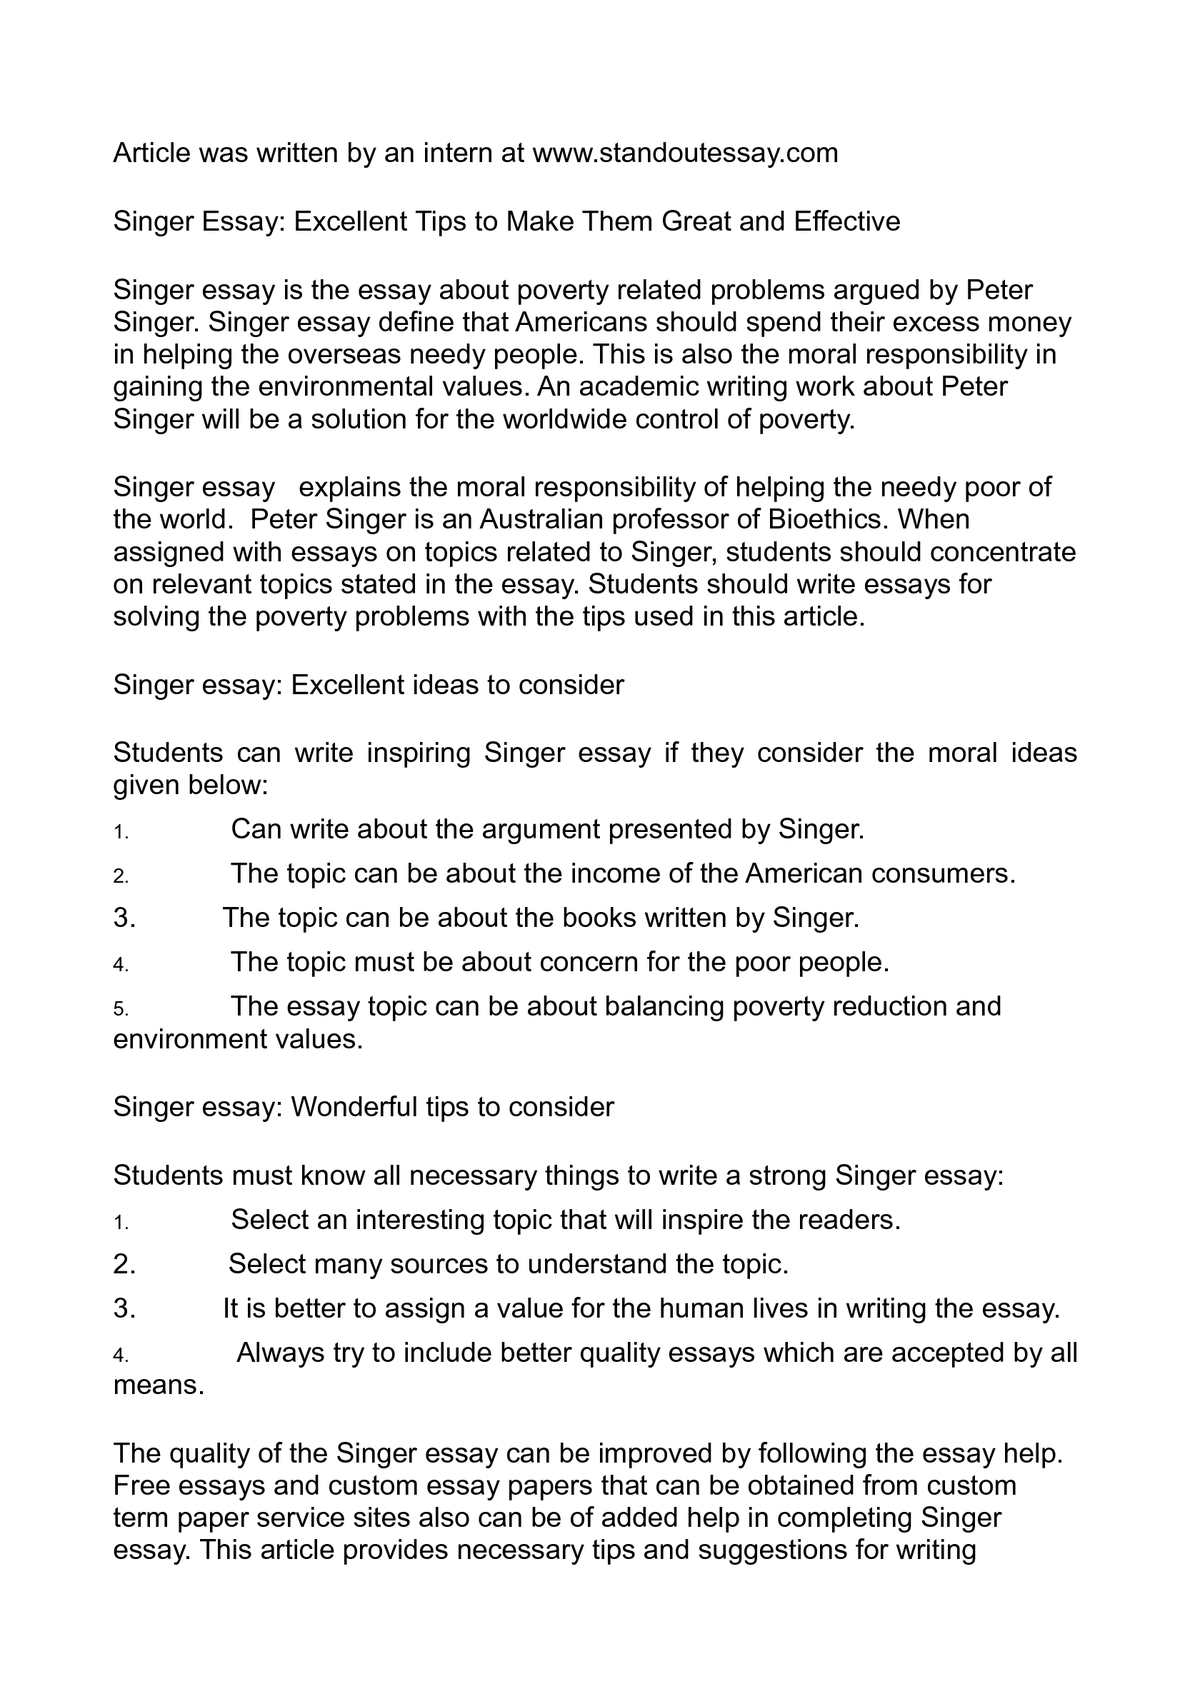 Calaméo - Singer Essay: Excellent Tips to Make Them Great and Effective